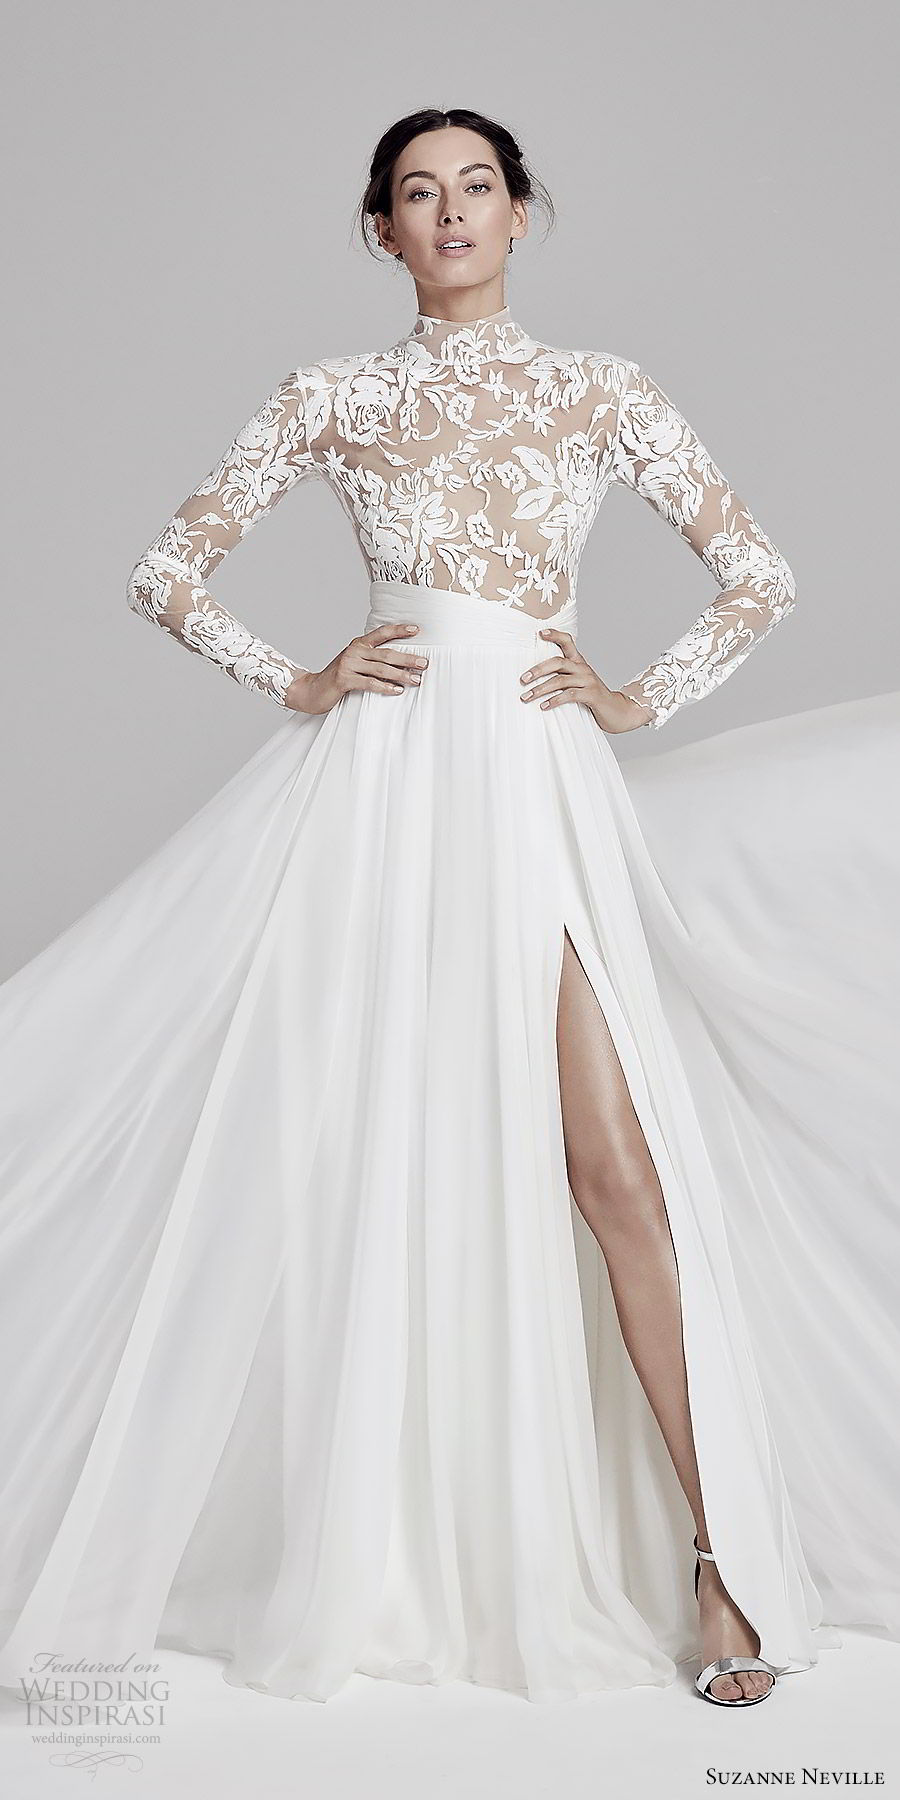 Suzanne Neville 2019 Wedding Dresses | Wedding Inspirasi